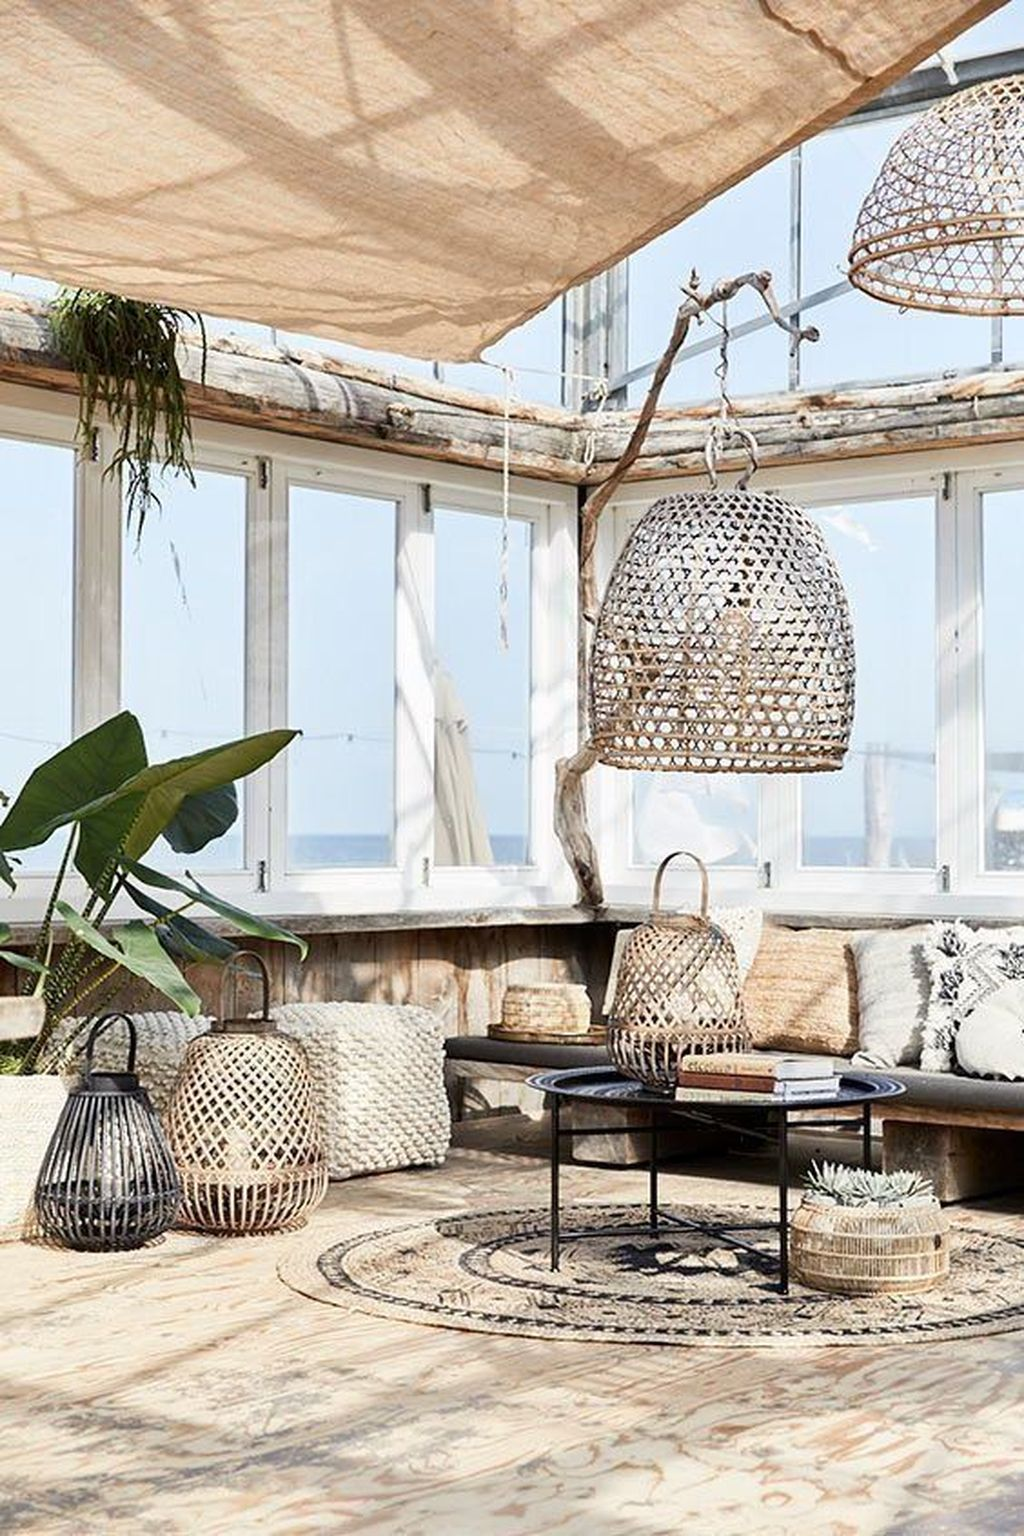 Best Summer Interior Design Ideas To Beautify Your Home 37